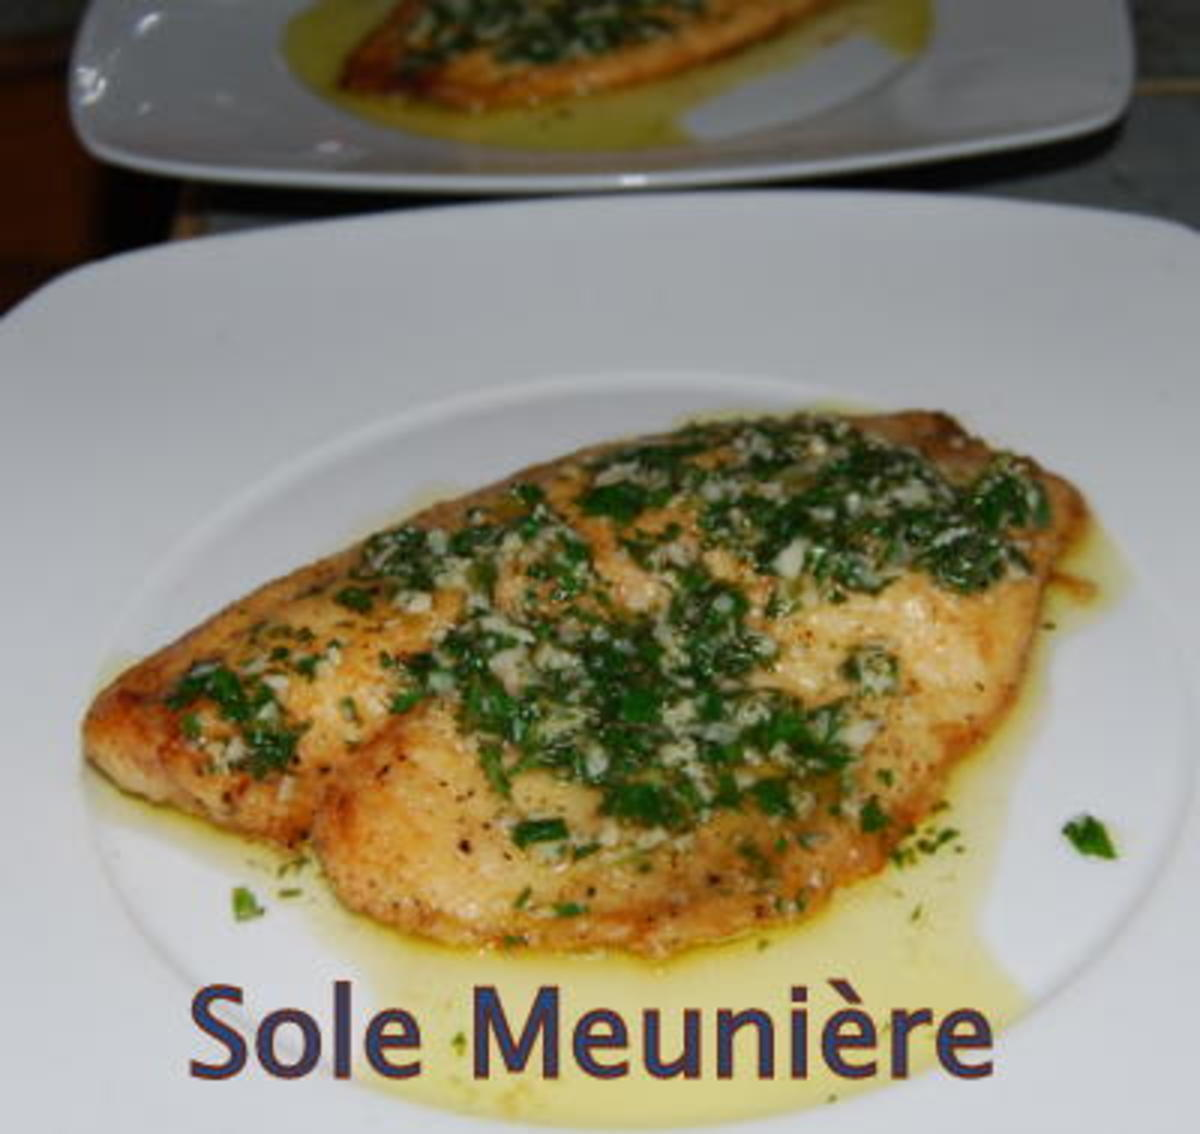 Sole Meuniere Recipe - A New Look at this Classic French ...